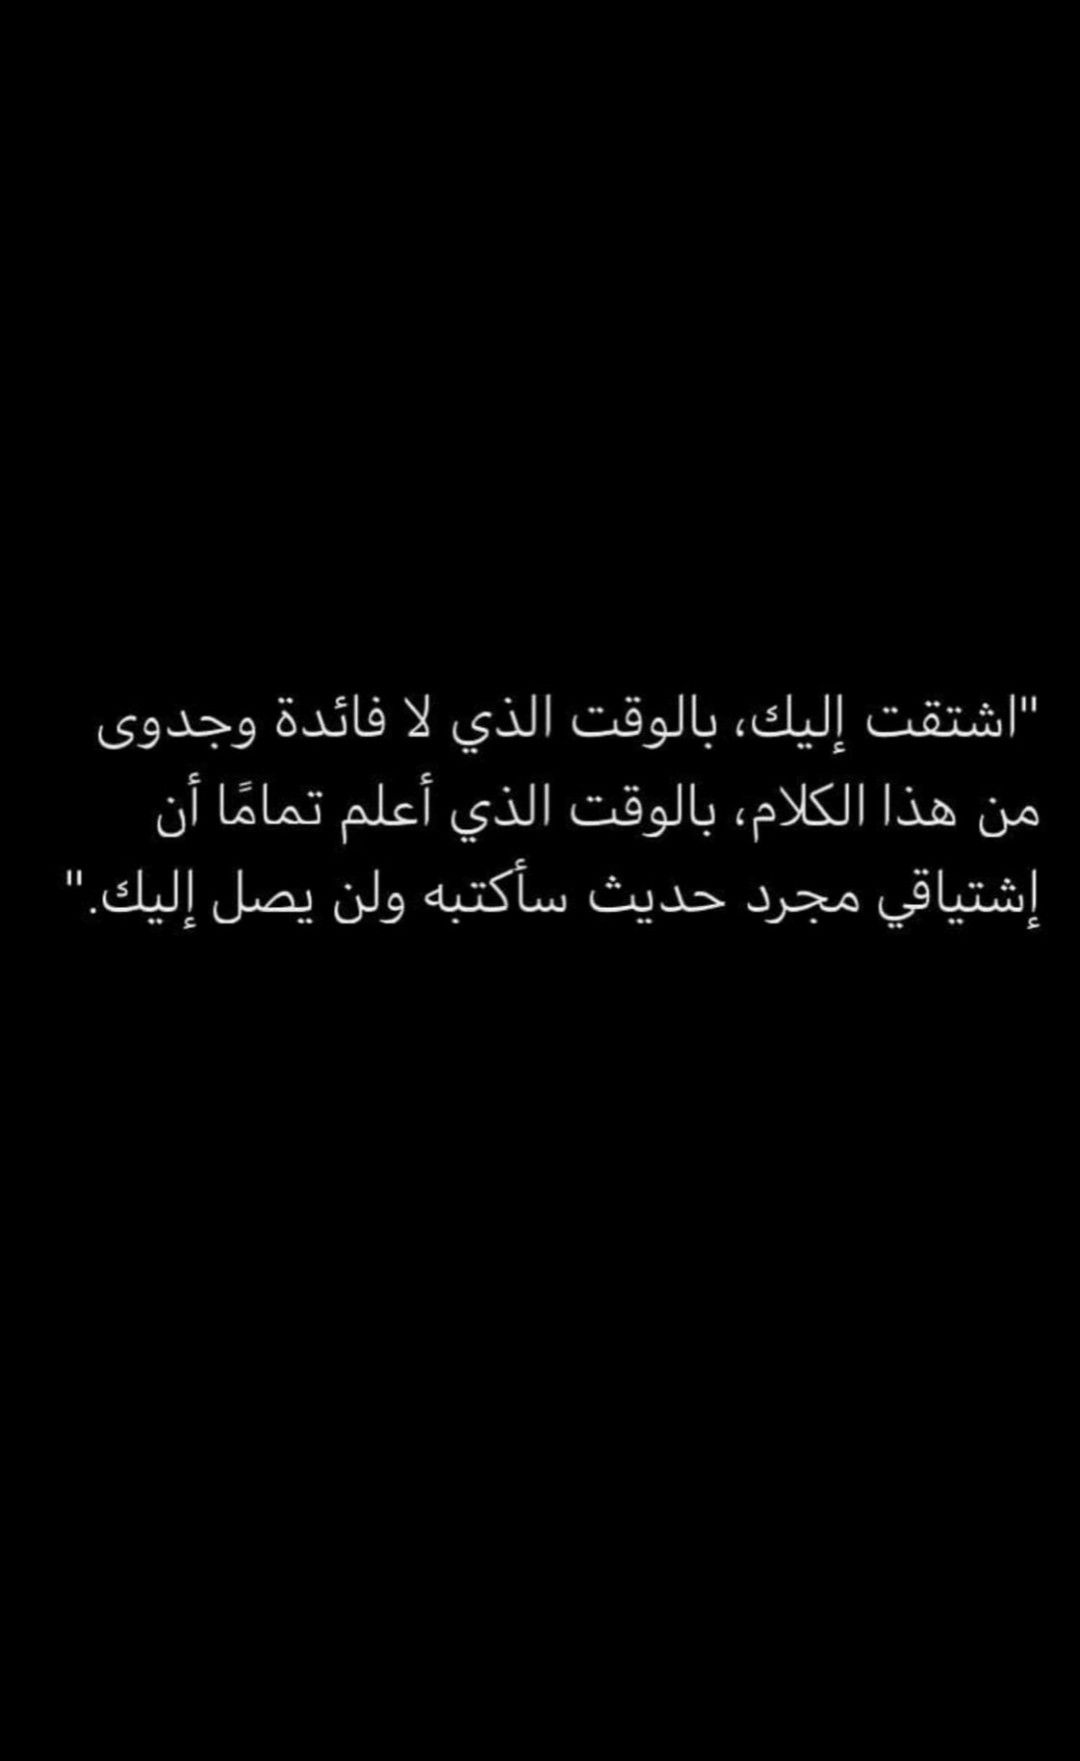 Pin By عيناك روايتي On Gozlerin Guzel Words Quotes Life Quotes Sweet Love Quotes